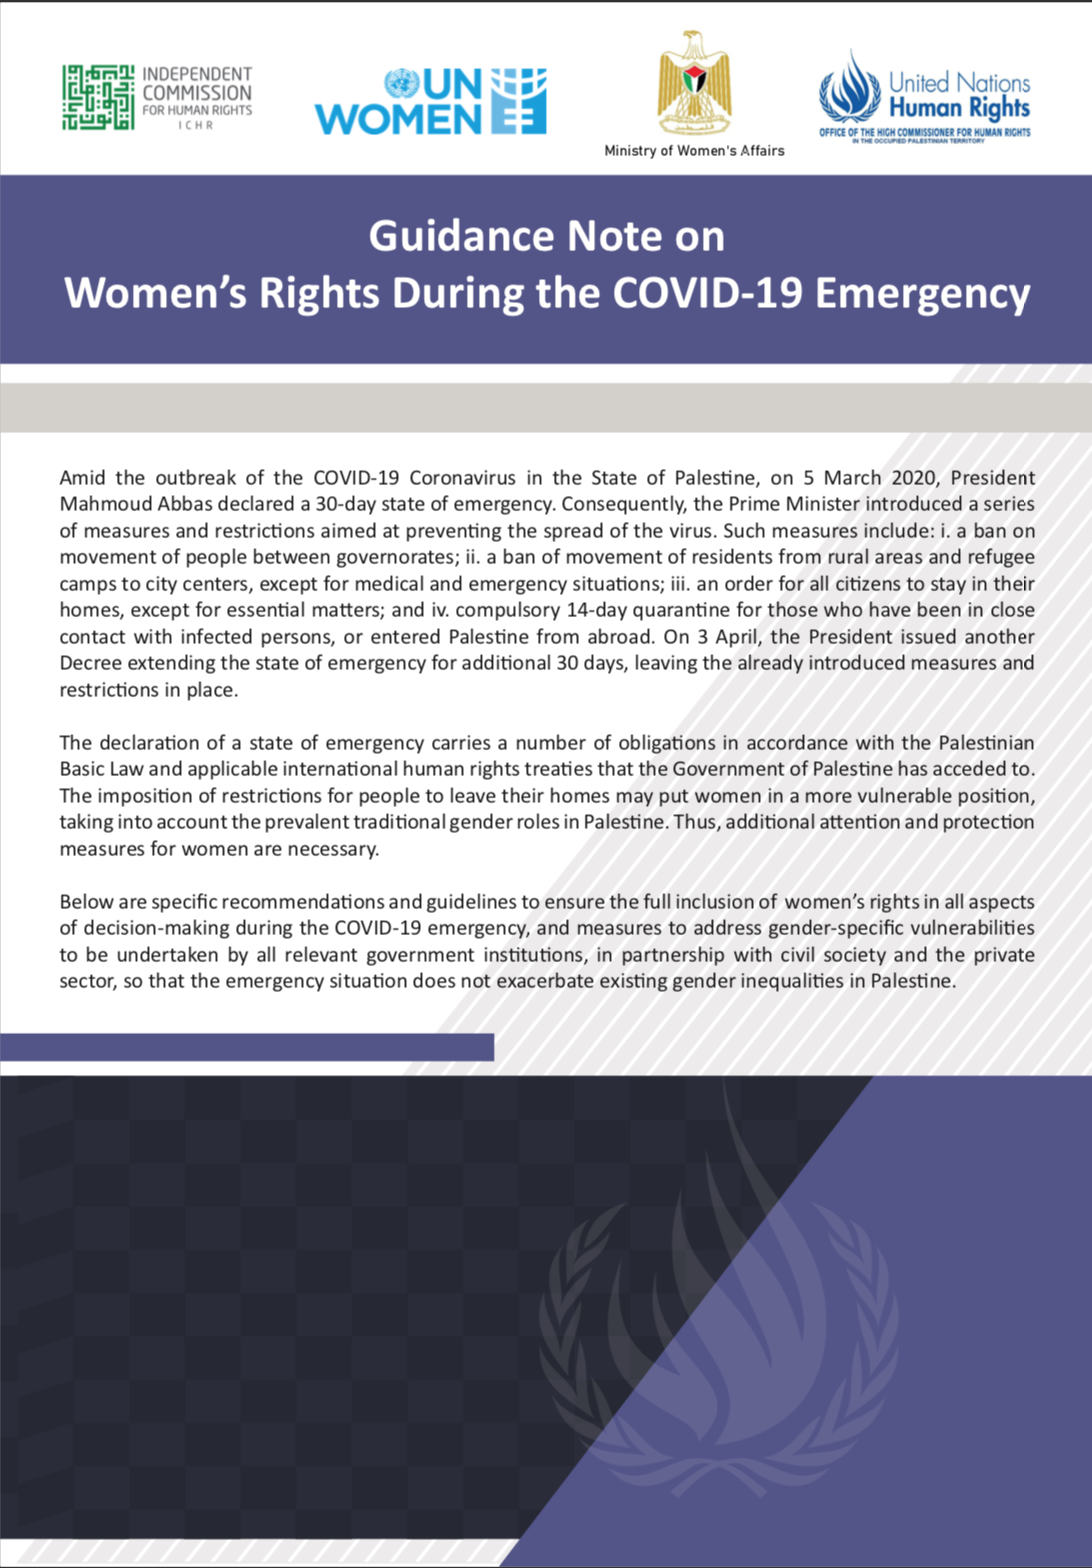 Guidance Note on Women's Rights During the COVID-19 Emergency